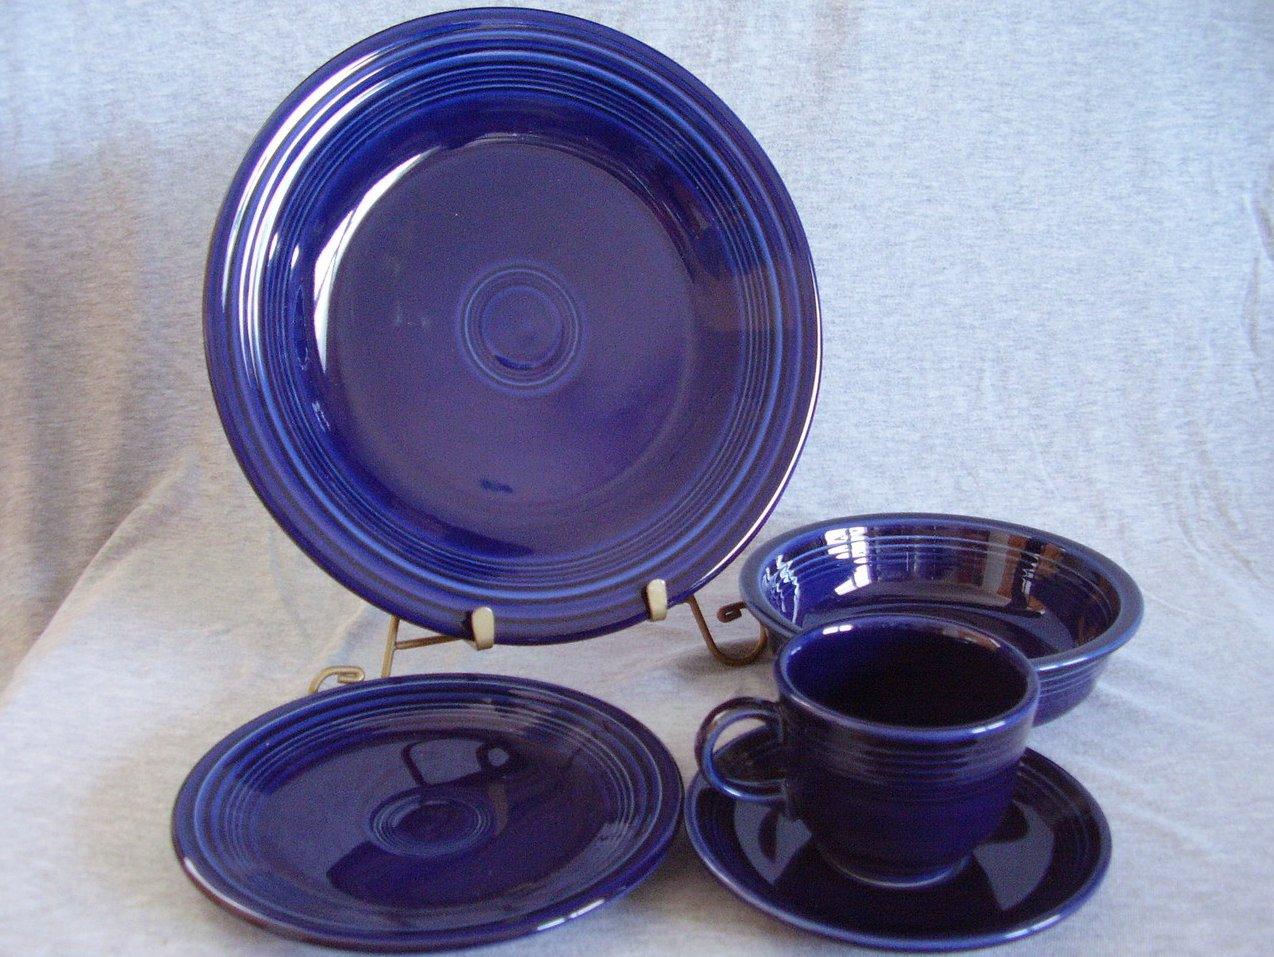 Fiestaware Cobalt 5pc Placesetting Contemporary